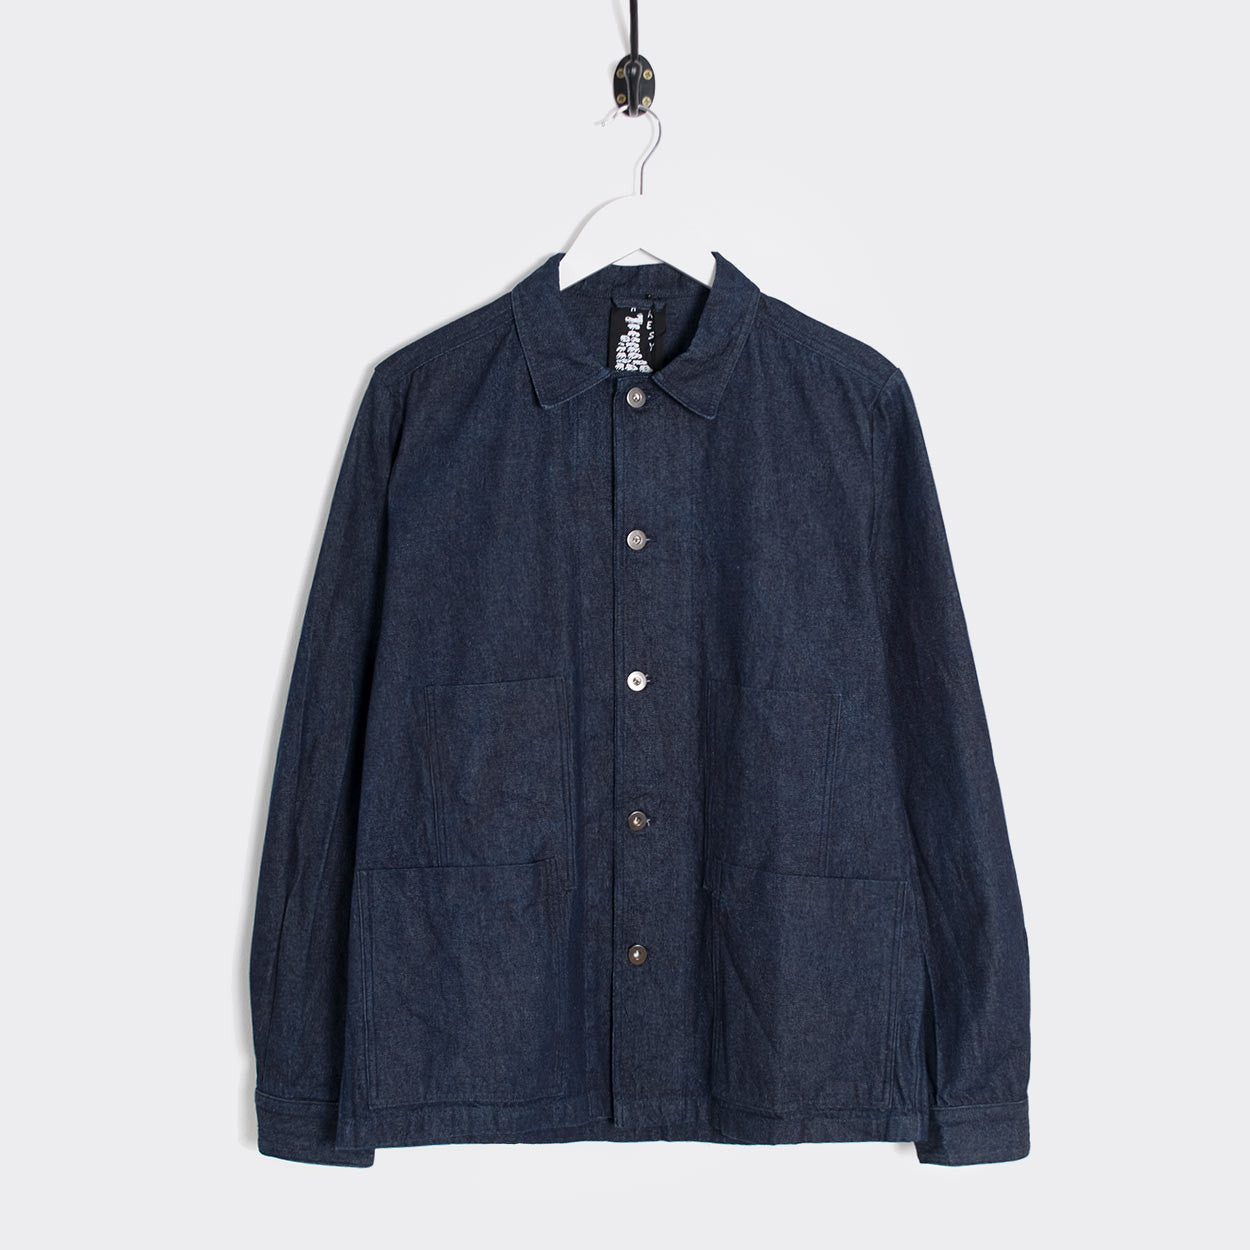 Heresy Drudge Jacket - Navy